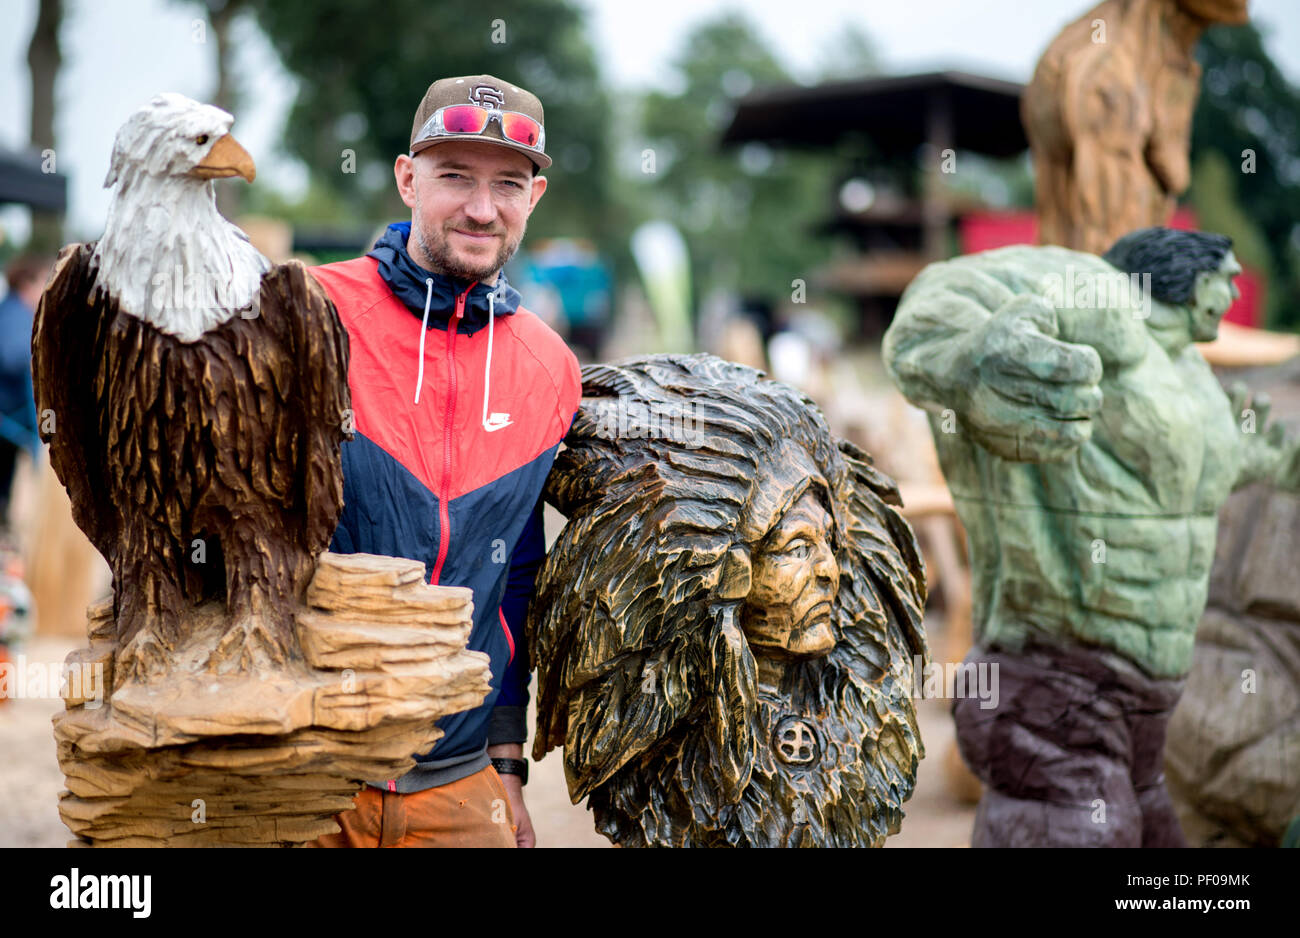 Saterland, Germany. 18th Aug, 2018. Wood artist and organizer Steffen Merla stands next to several wooden figures he made during the Northwest German Championship in chainsaw carving. A figure is carved out of wood with a chain saw during the discipline of speed carving. The wooden figures created in this way are auctioned off for a good cause. Credit: Hauke-Christian Dittrich/dpa/Alamy Live News - Stock Image